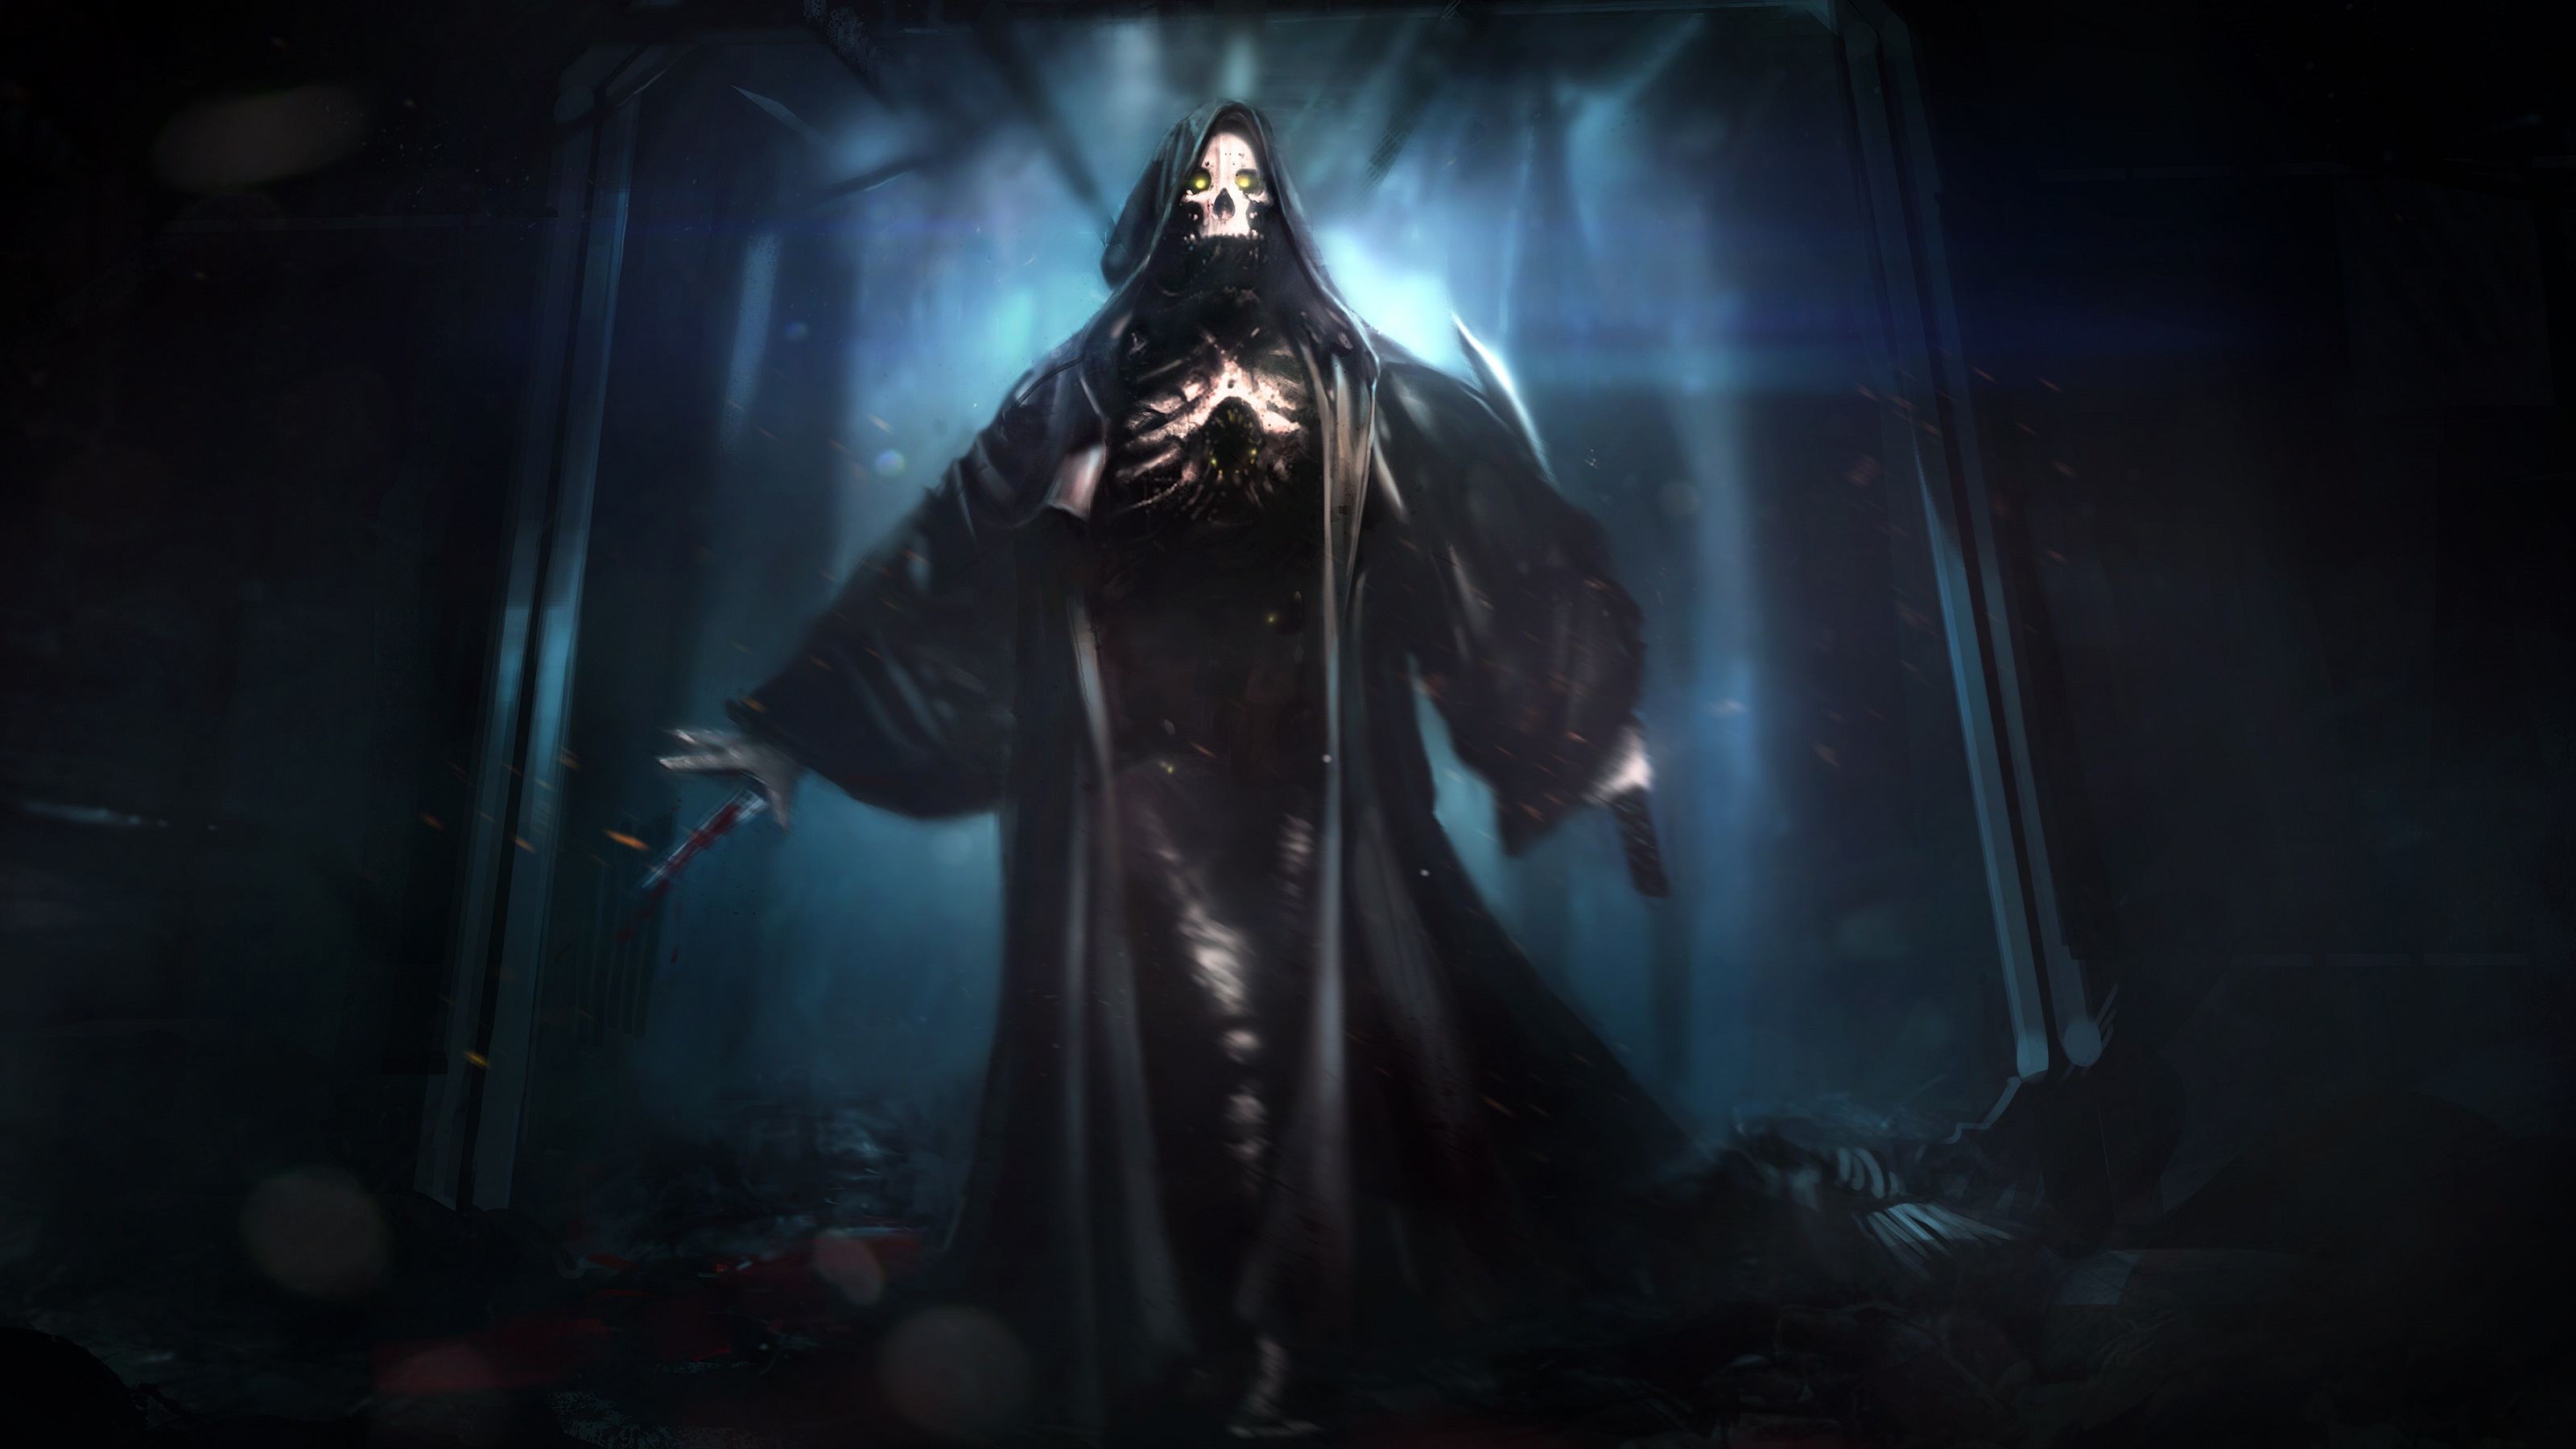 Creepy full hd wallpaper and background image 3200x1800 - 3200x1800 wallpaper ...